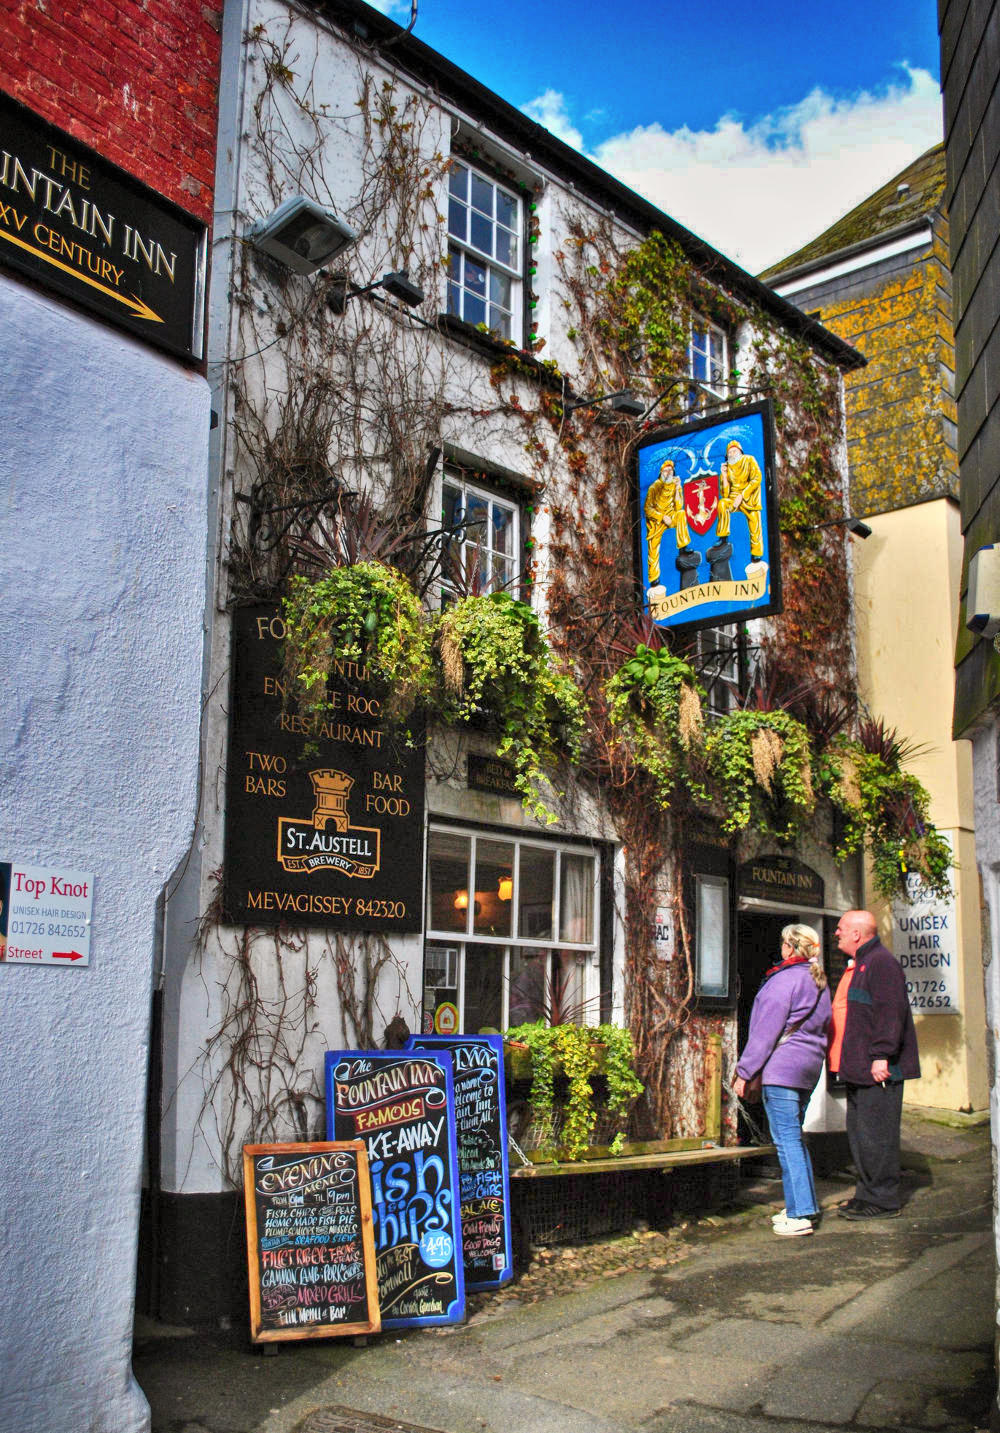 The 15th century Fountain Inn, Mevagissey, Cornwall. Credit Baz Richardson, flickr